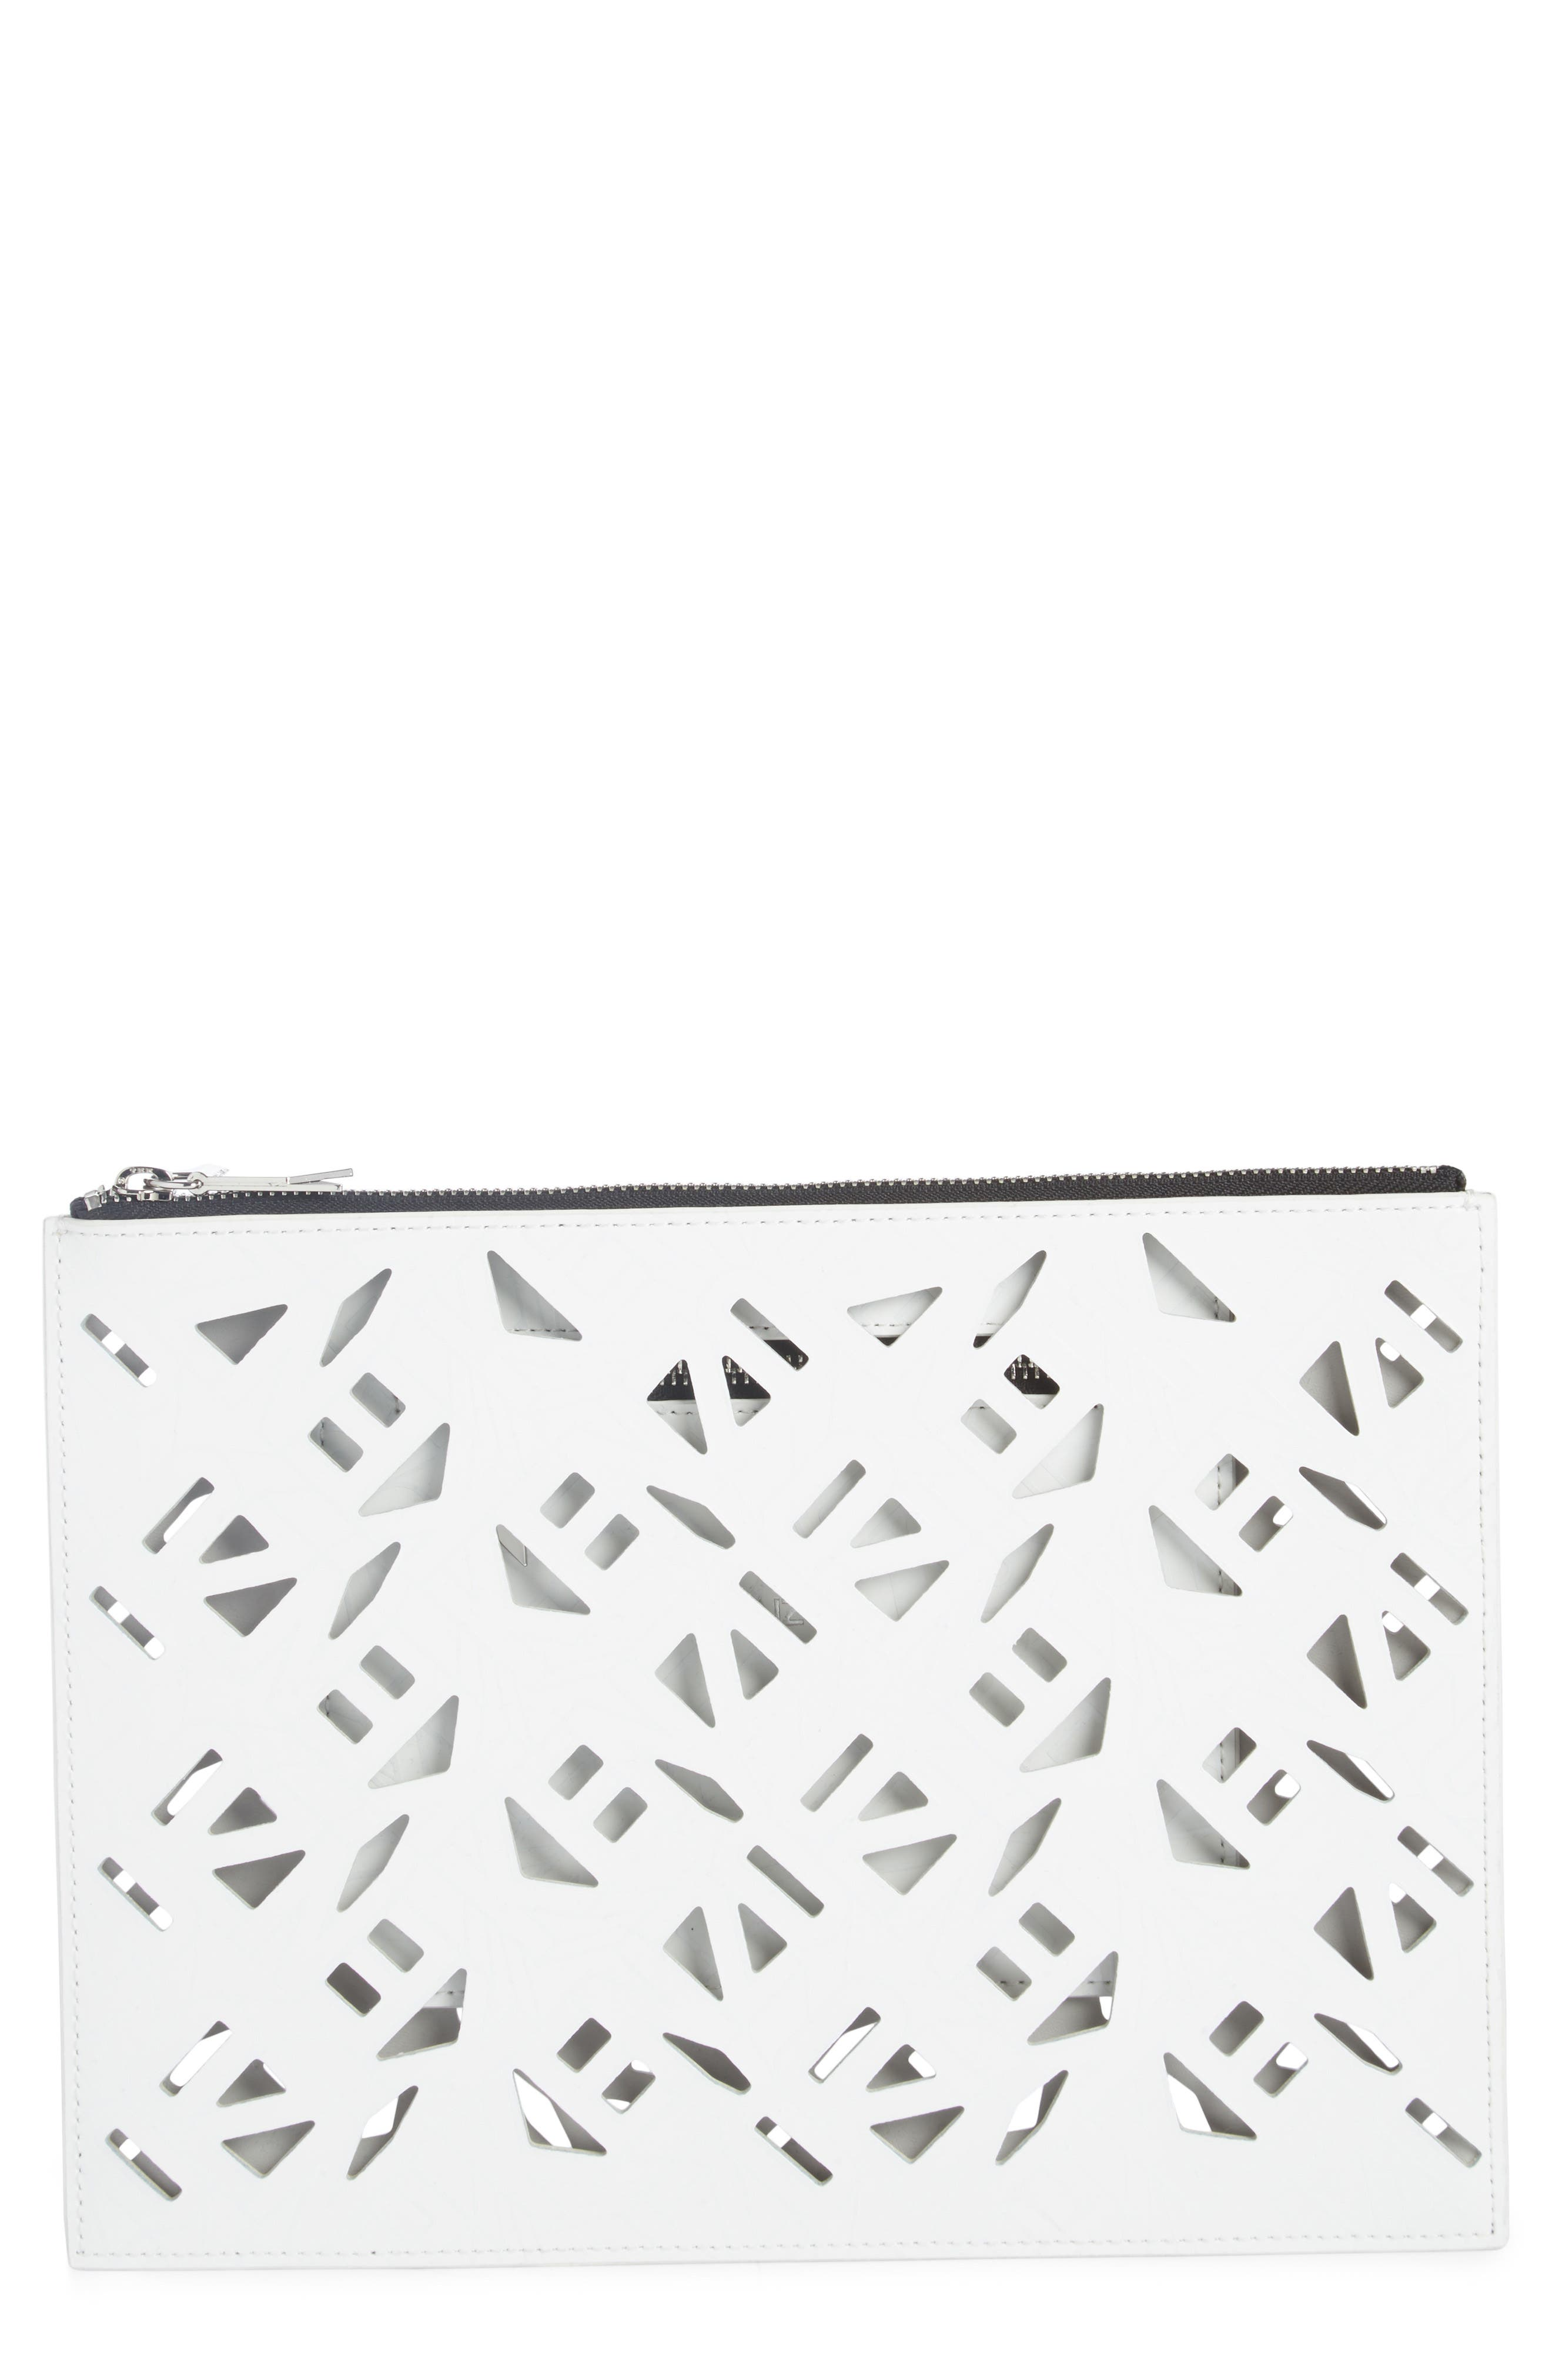 Art Gummy Perforated Leather A4 Pouch,                             Main thumbnail 1, color,